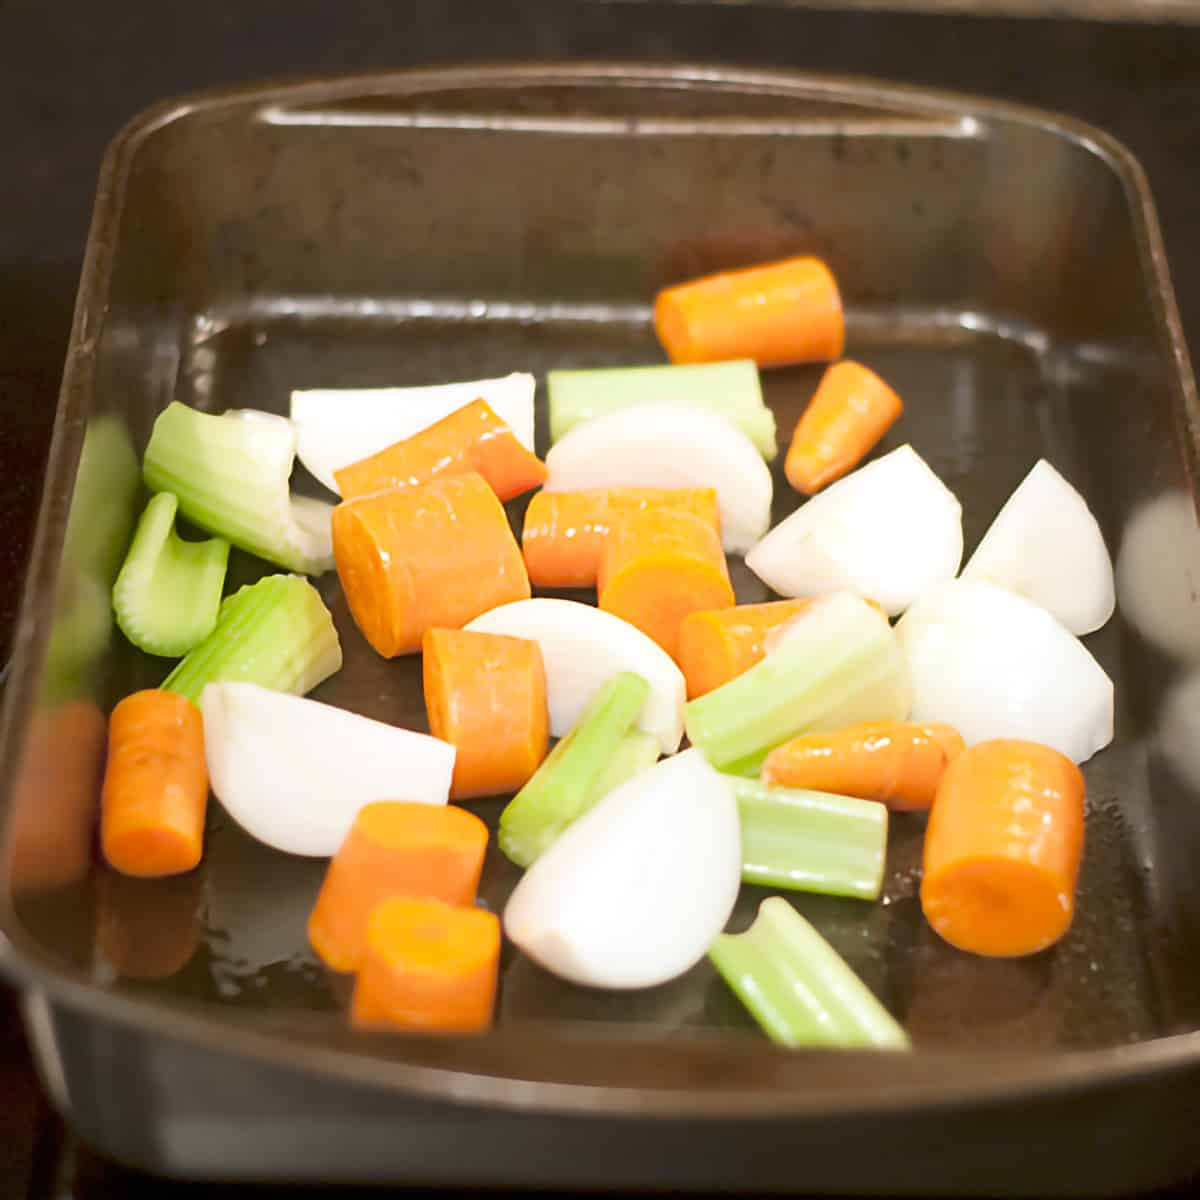 A baking pan containing carrots, onions, and celery.